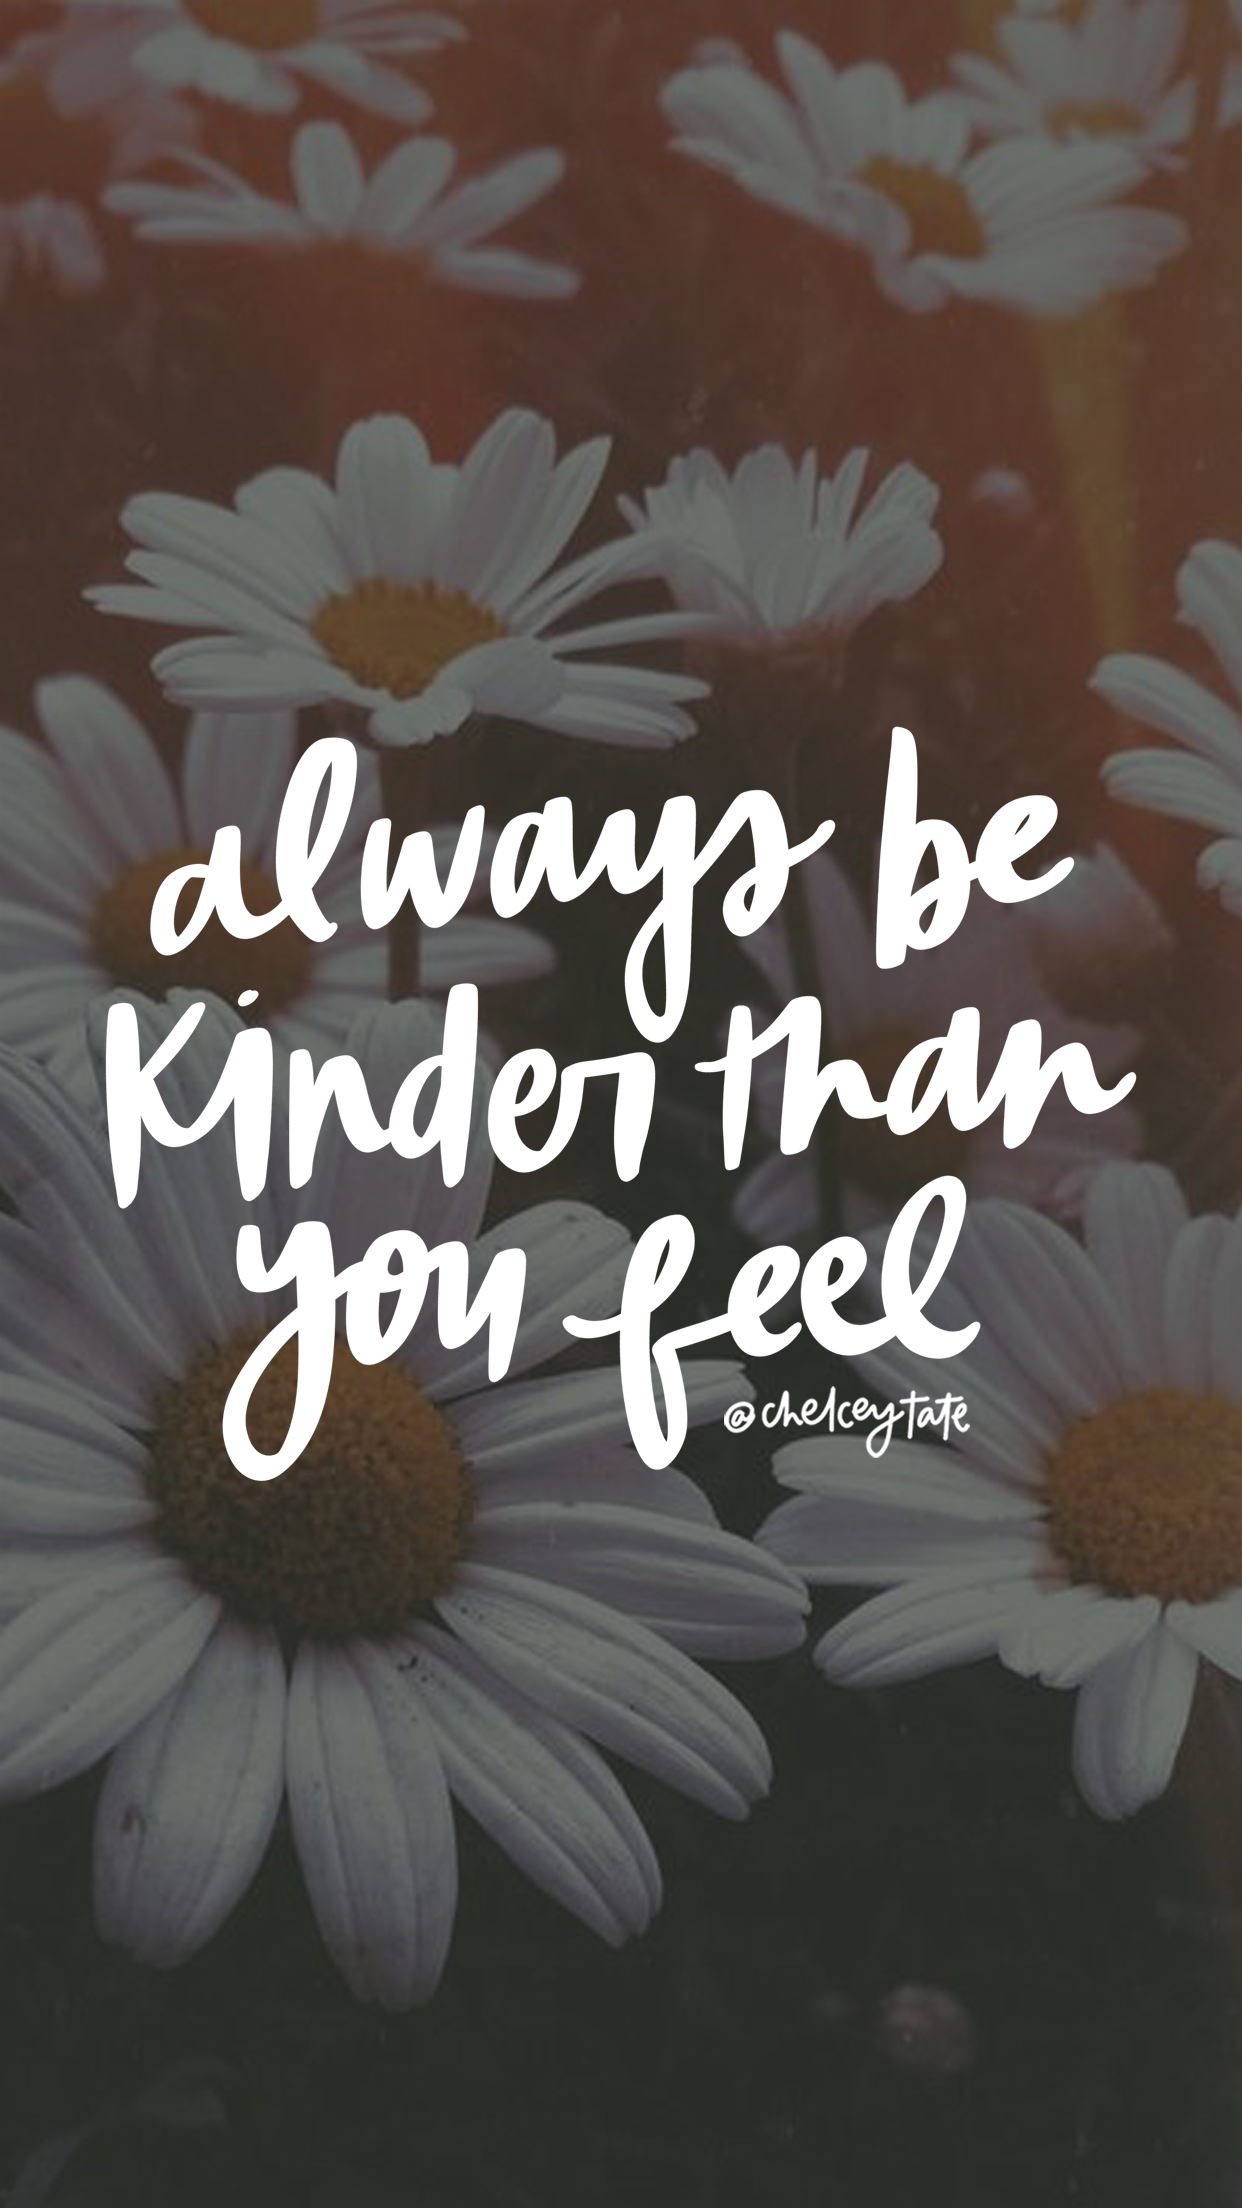 Always Be Kinder Than You Feel iPhone Wallpaper Daily Love Note by Chelcey Tate via chelceytate.com